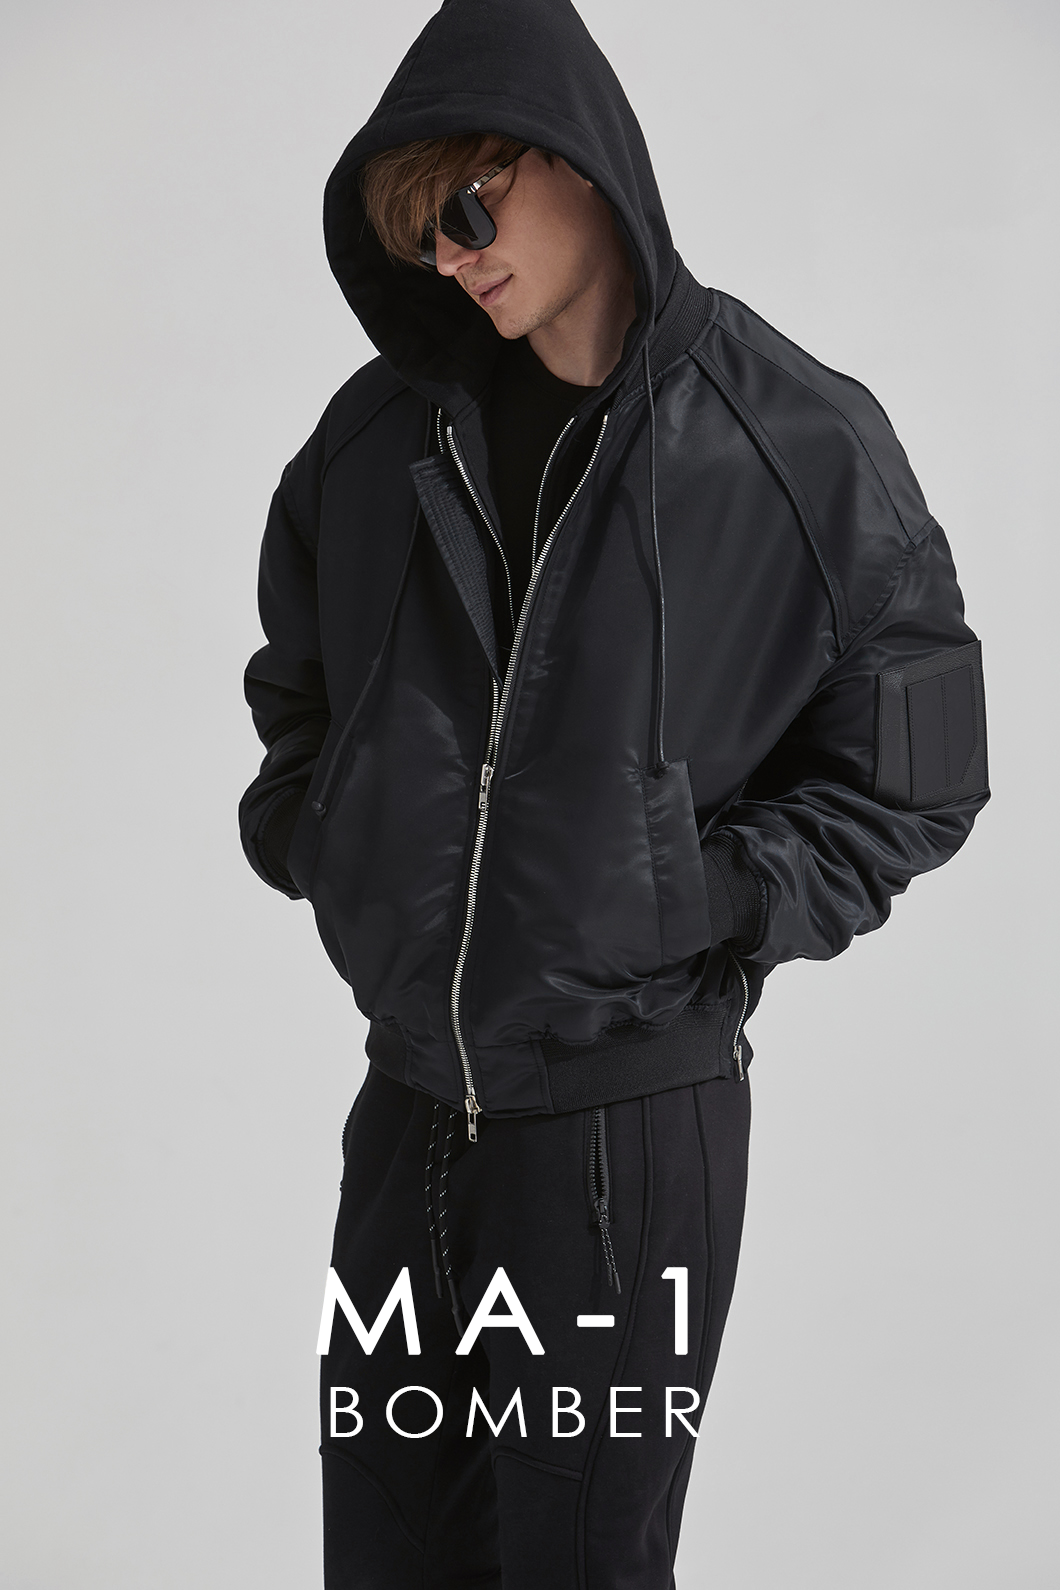 MA-1 BOMBER JACKET-BLACK소량 재입고